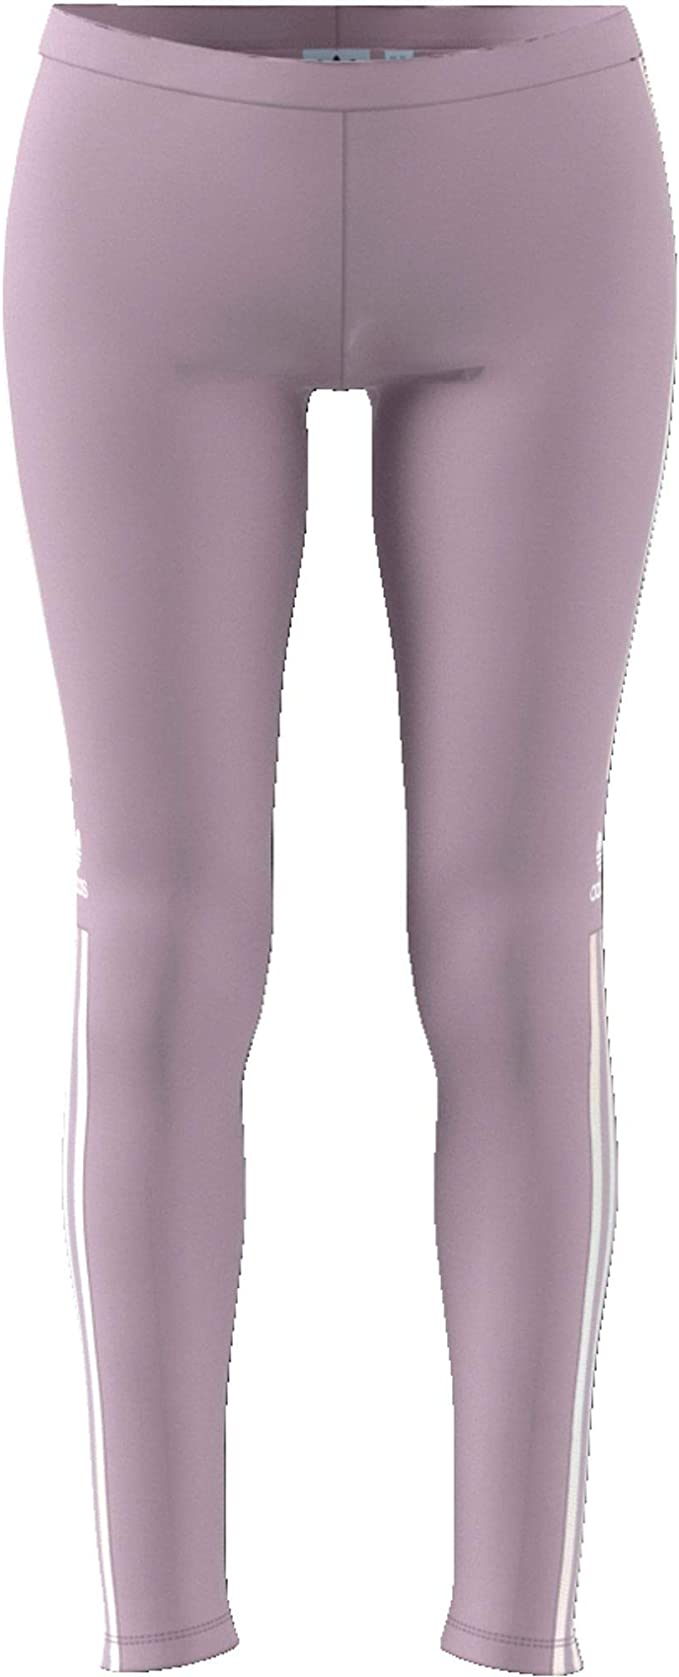 apagado opción martillo  adidas Women's Trefoil Tight, Soft Vision, Size: 36: Amazon.co.uk: Sports &  Outdoors